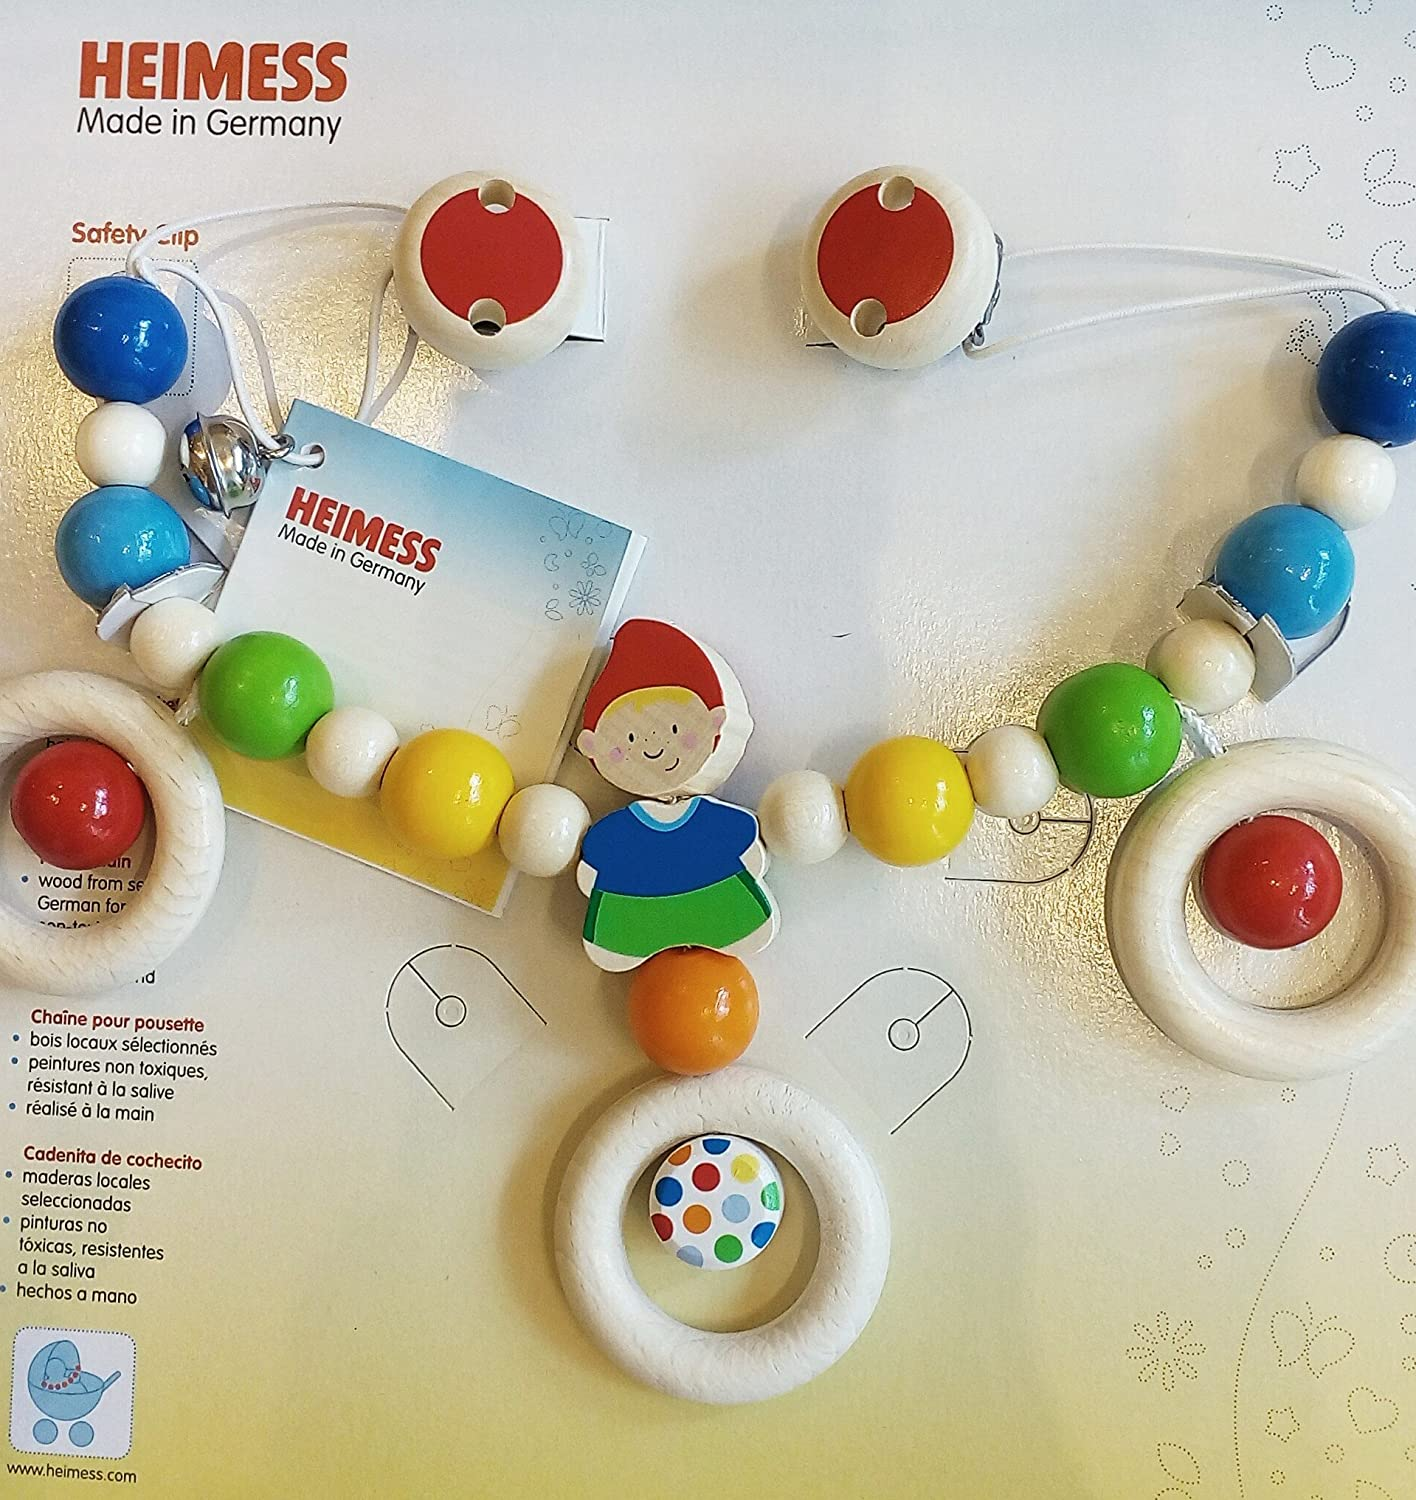 Heimess - Chain for Pushchair with Hanging Dwarf Clips (765040)